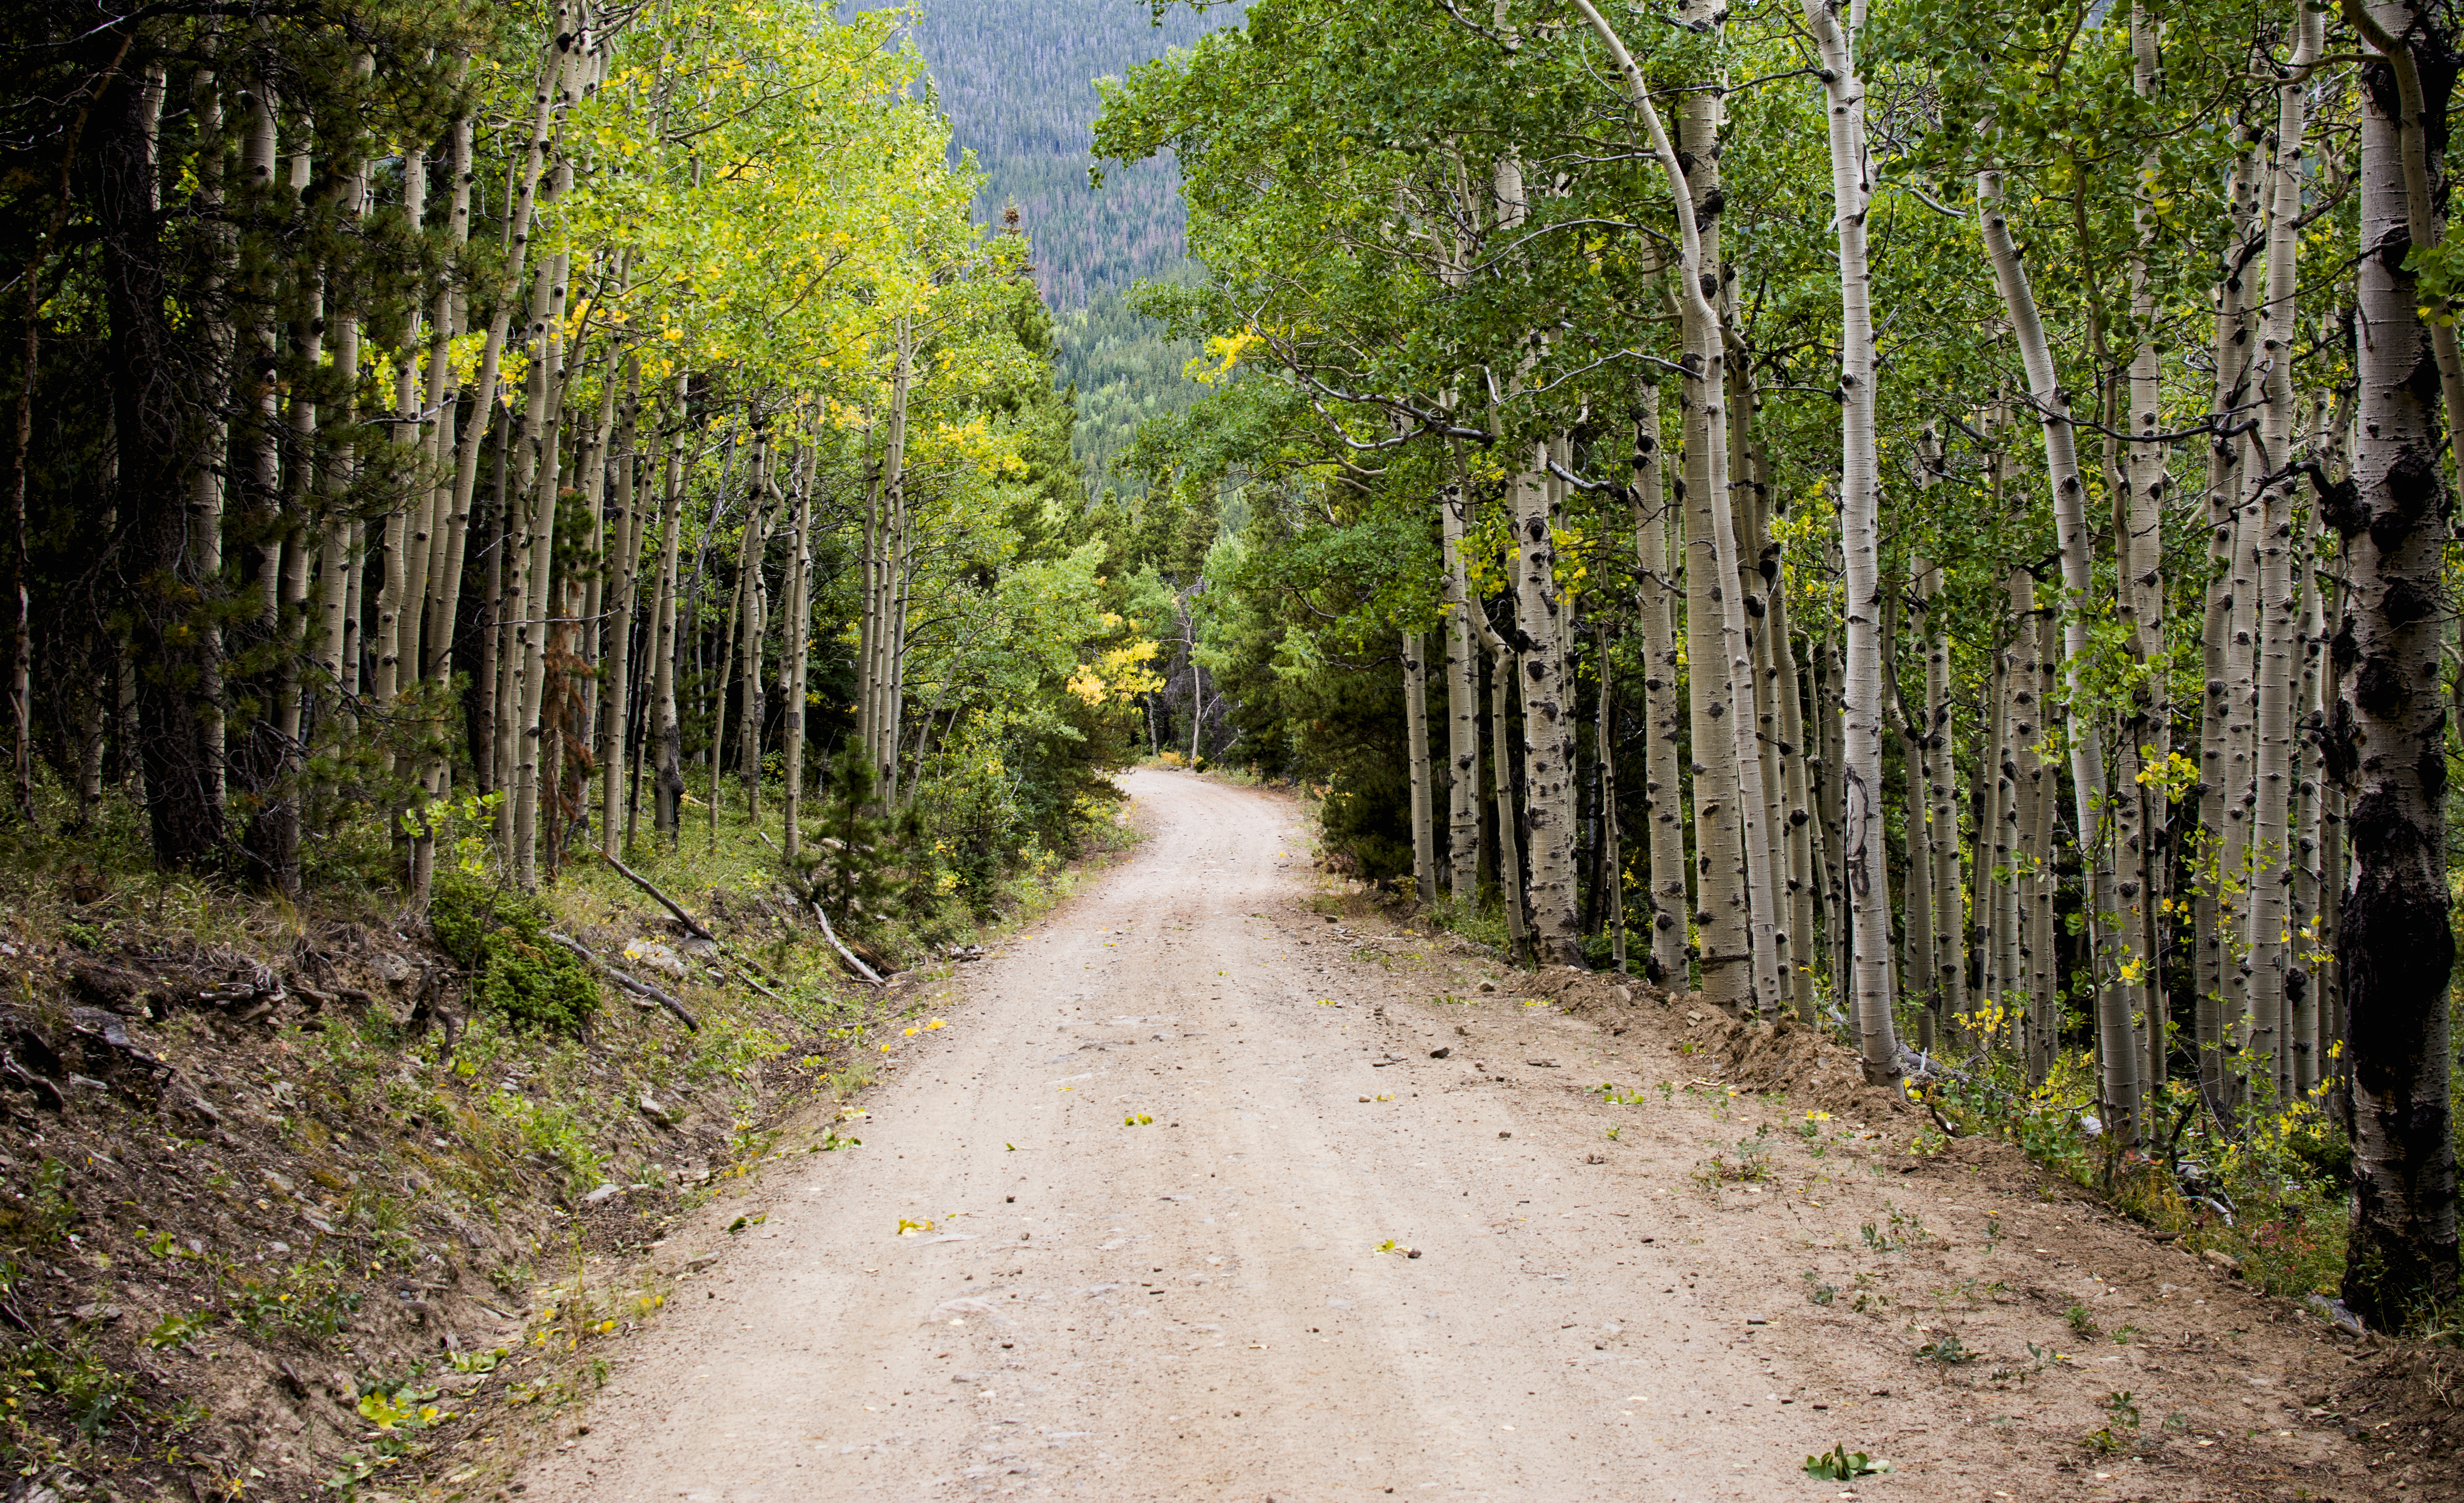 Fall Woods Wallpaper Dirt Road Surrounded Green Grasses By Trees At Daytime